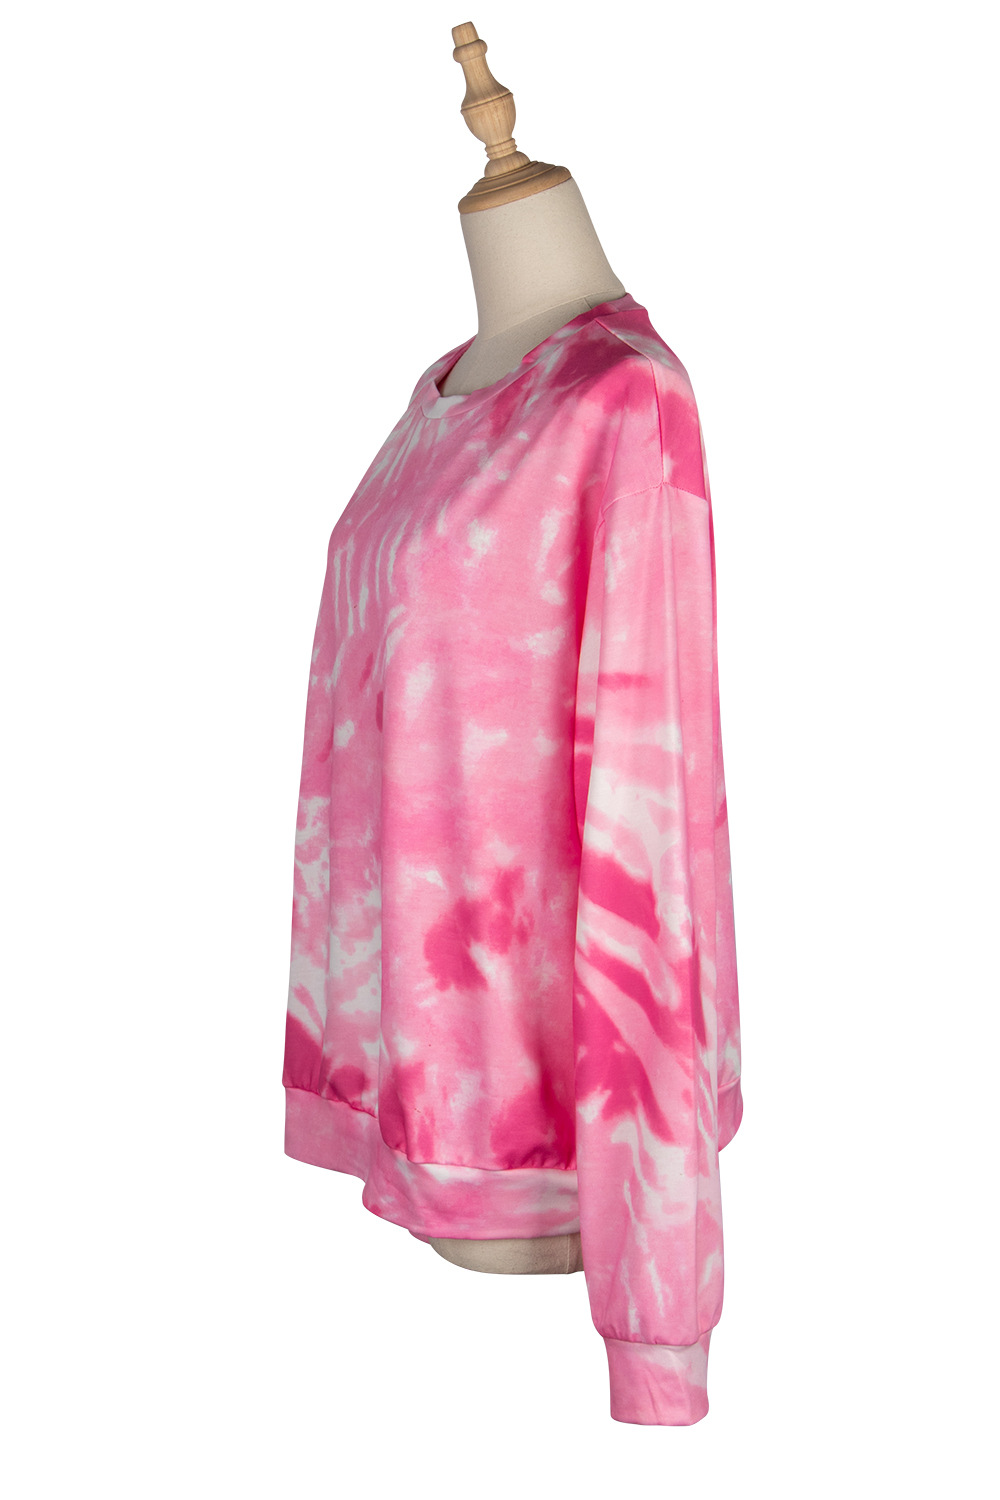 hot style printed tie-dye sweater women's long-sleeved round neck pullover sweater NSDF1284